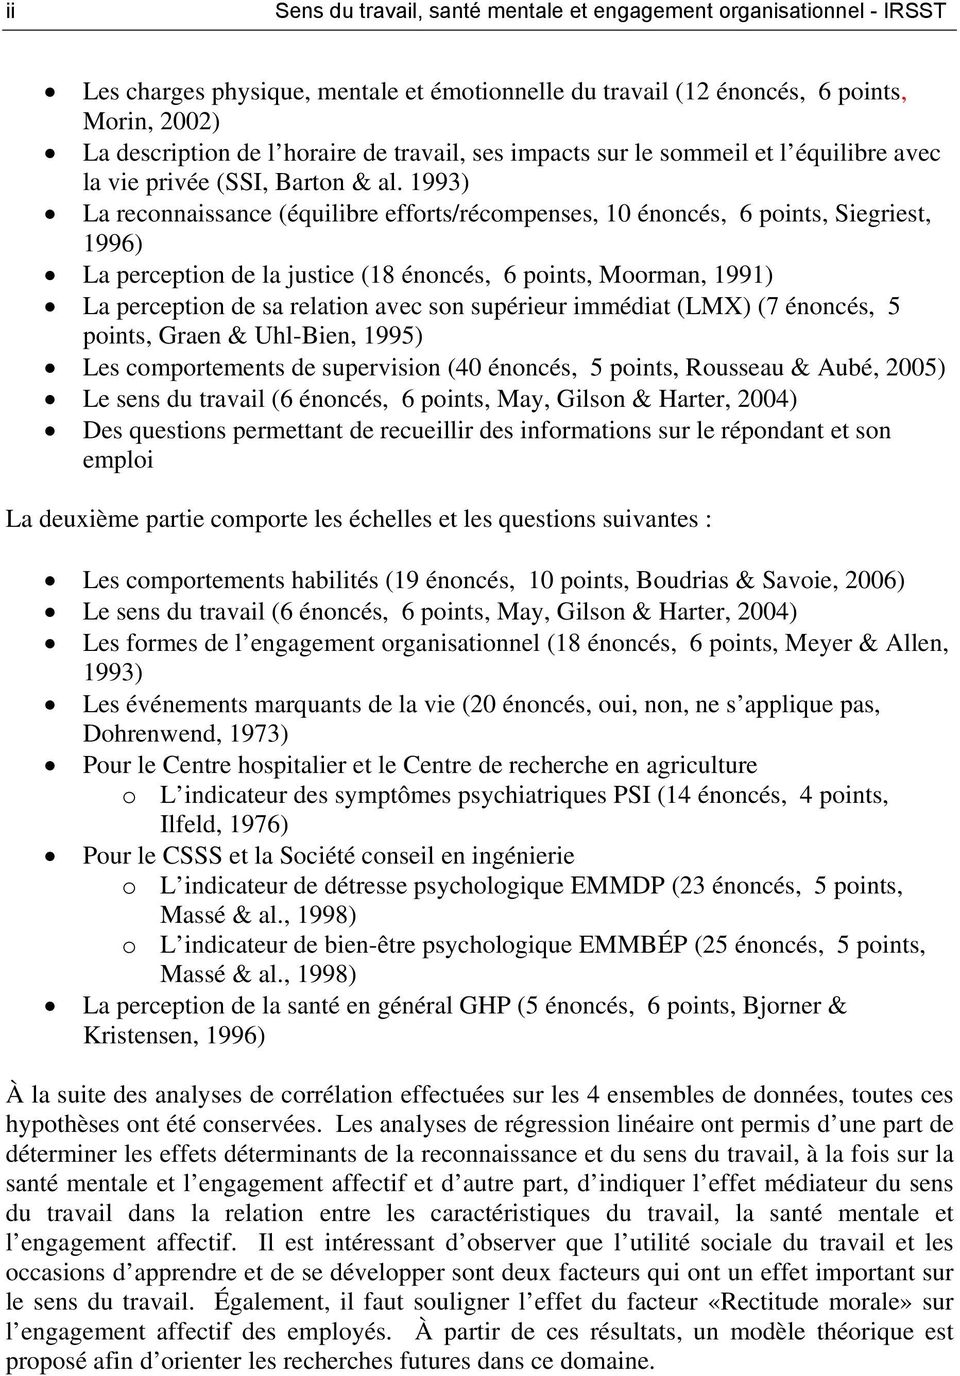 1993) La reconnaissance (équilibre efforts/récompenses, 10 énoncés, 6 points, Siegriest, 1996) La perception de la justice (18 énoncés, 6 points, Moorman, 1991) La perception de sa relation avec son